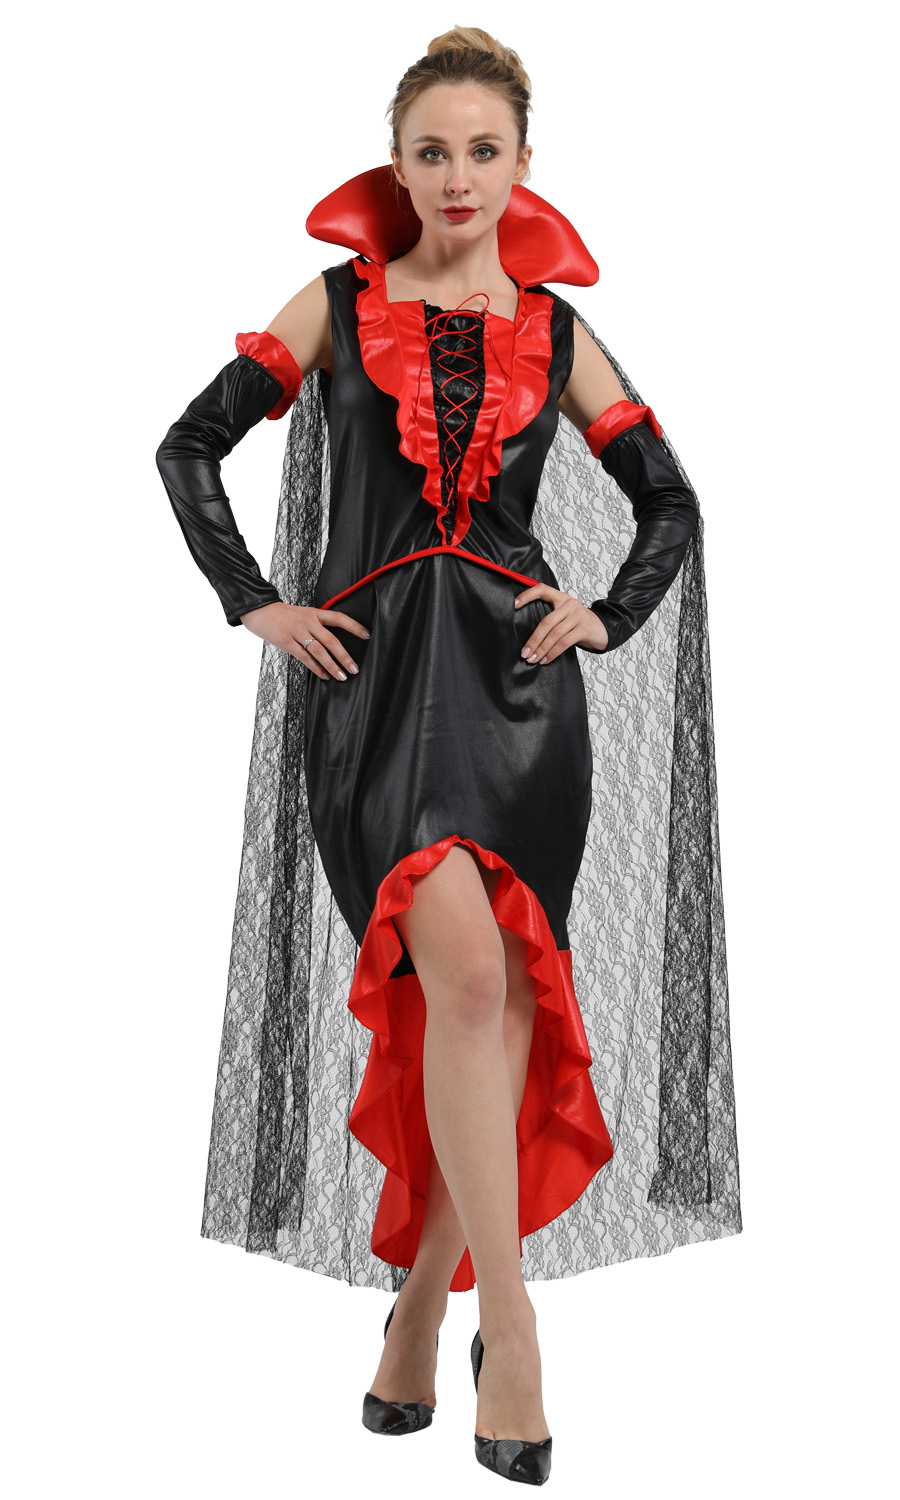 <font><b>Halloween</b></font> ghost bride <font><b>Sexy</b></font> <font><b>Vampire</b></font> <font><b>Costumes</b></font> Adult Women Queen Carnival Party Cosplay Fancy Dress image